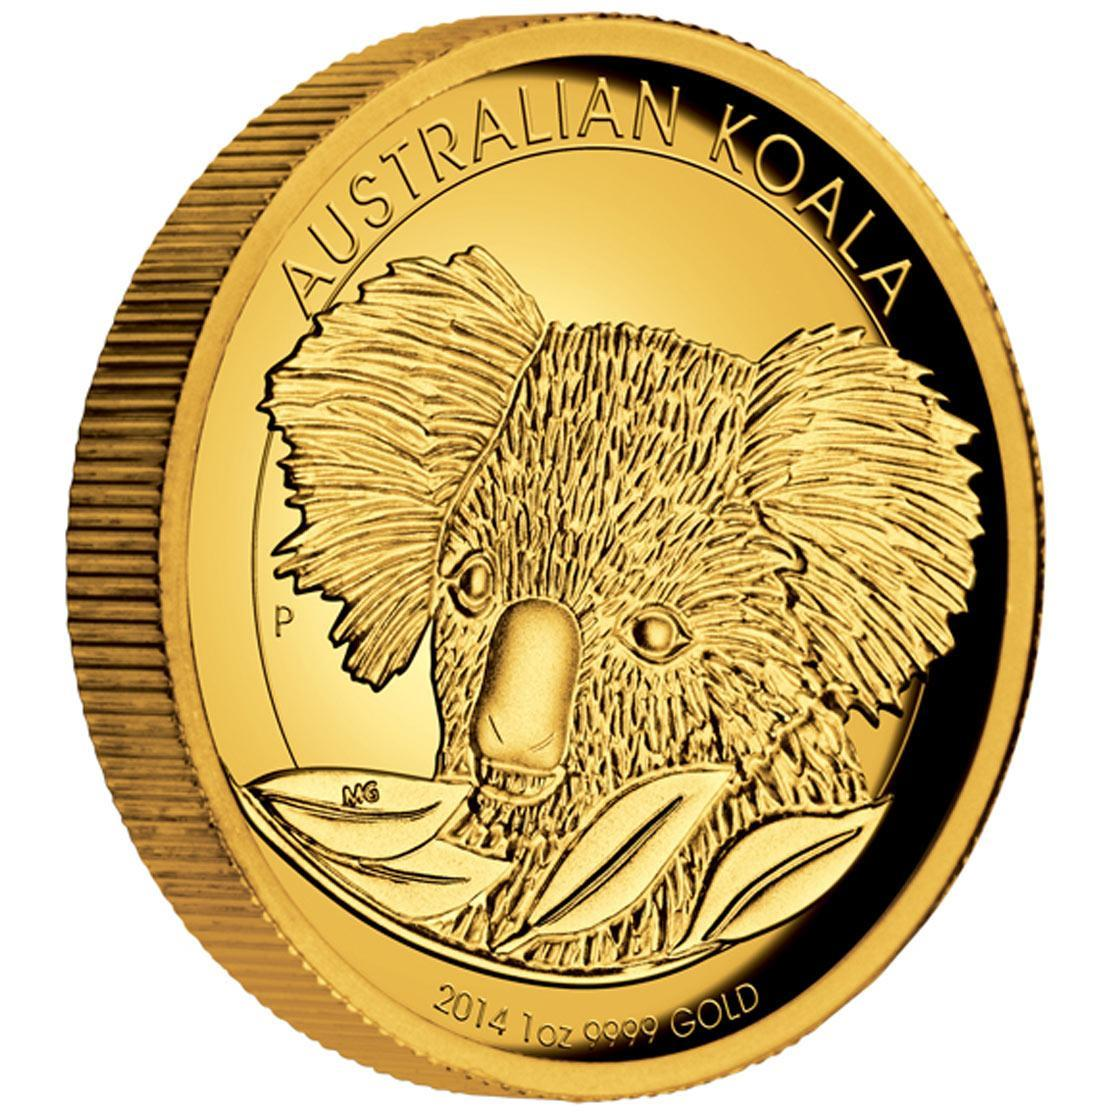 Zlatá mince Australská Koala 2014 1 oz Proof High Relief - Líc